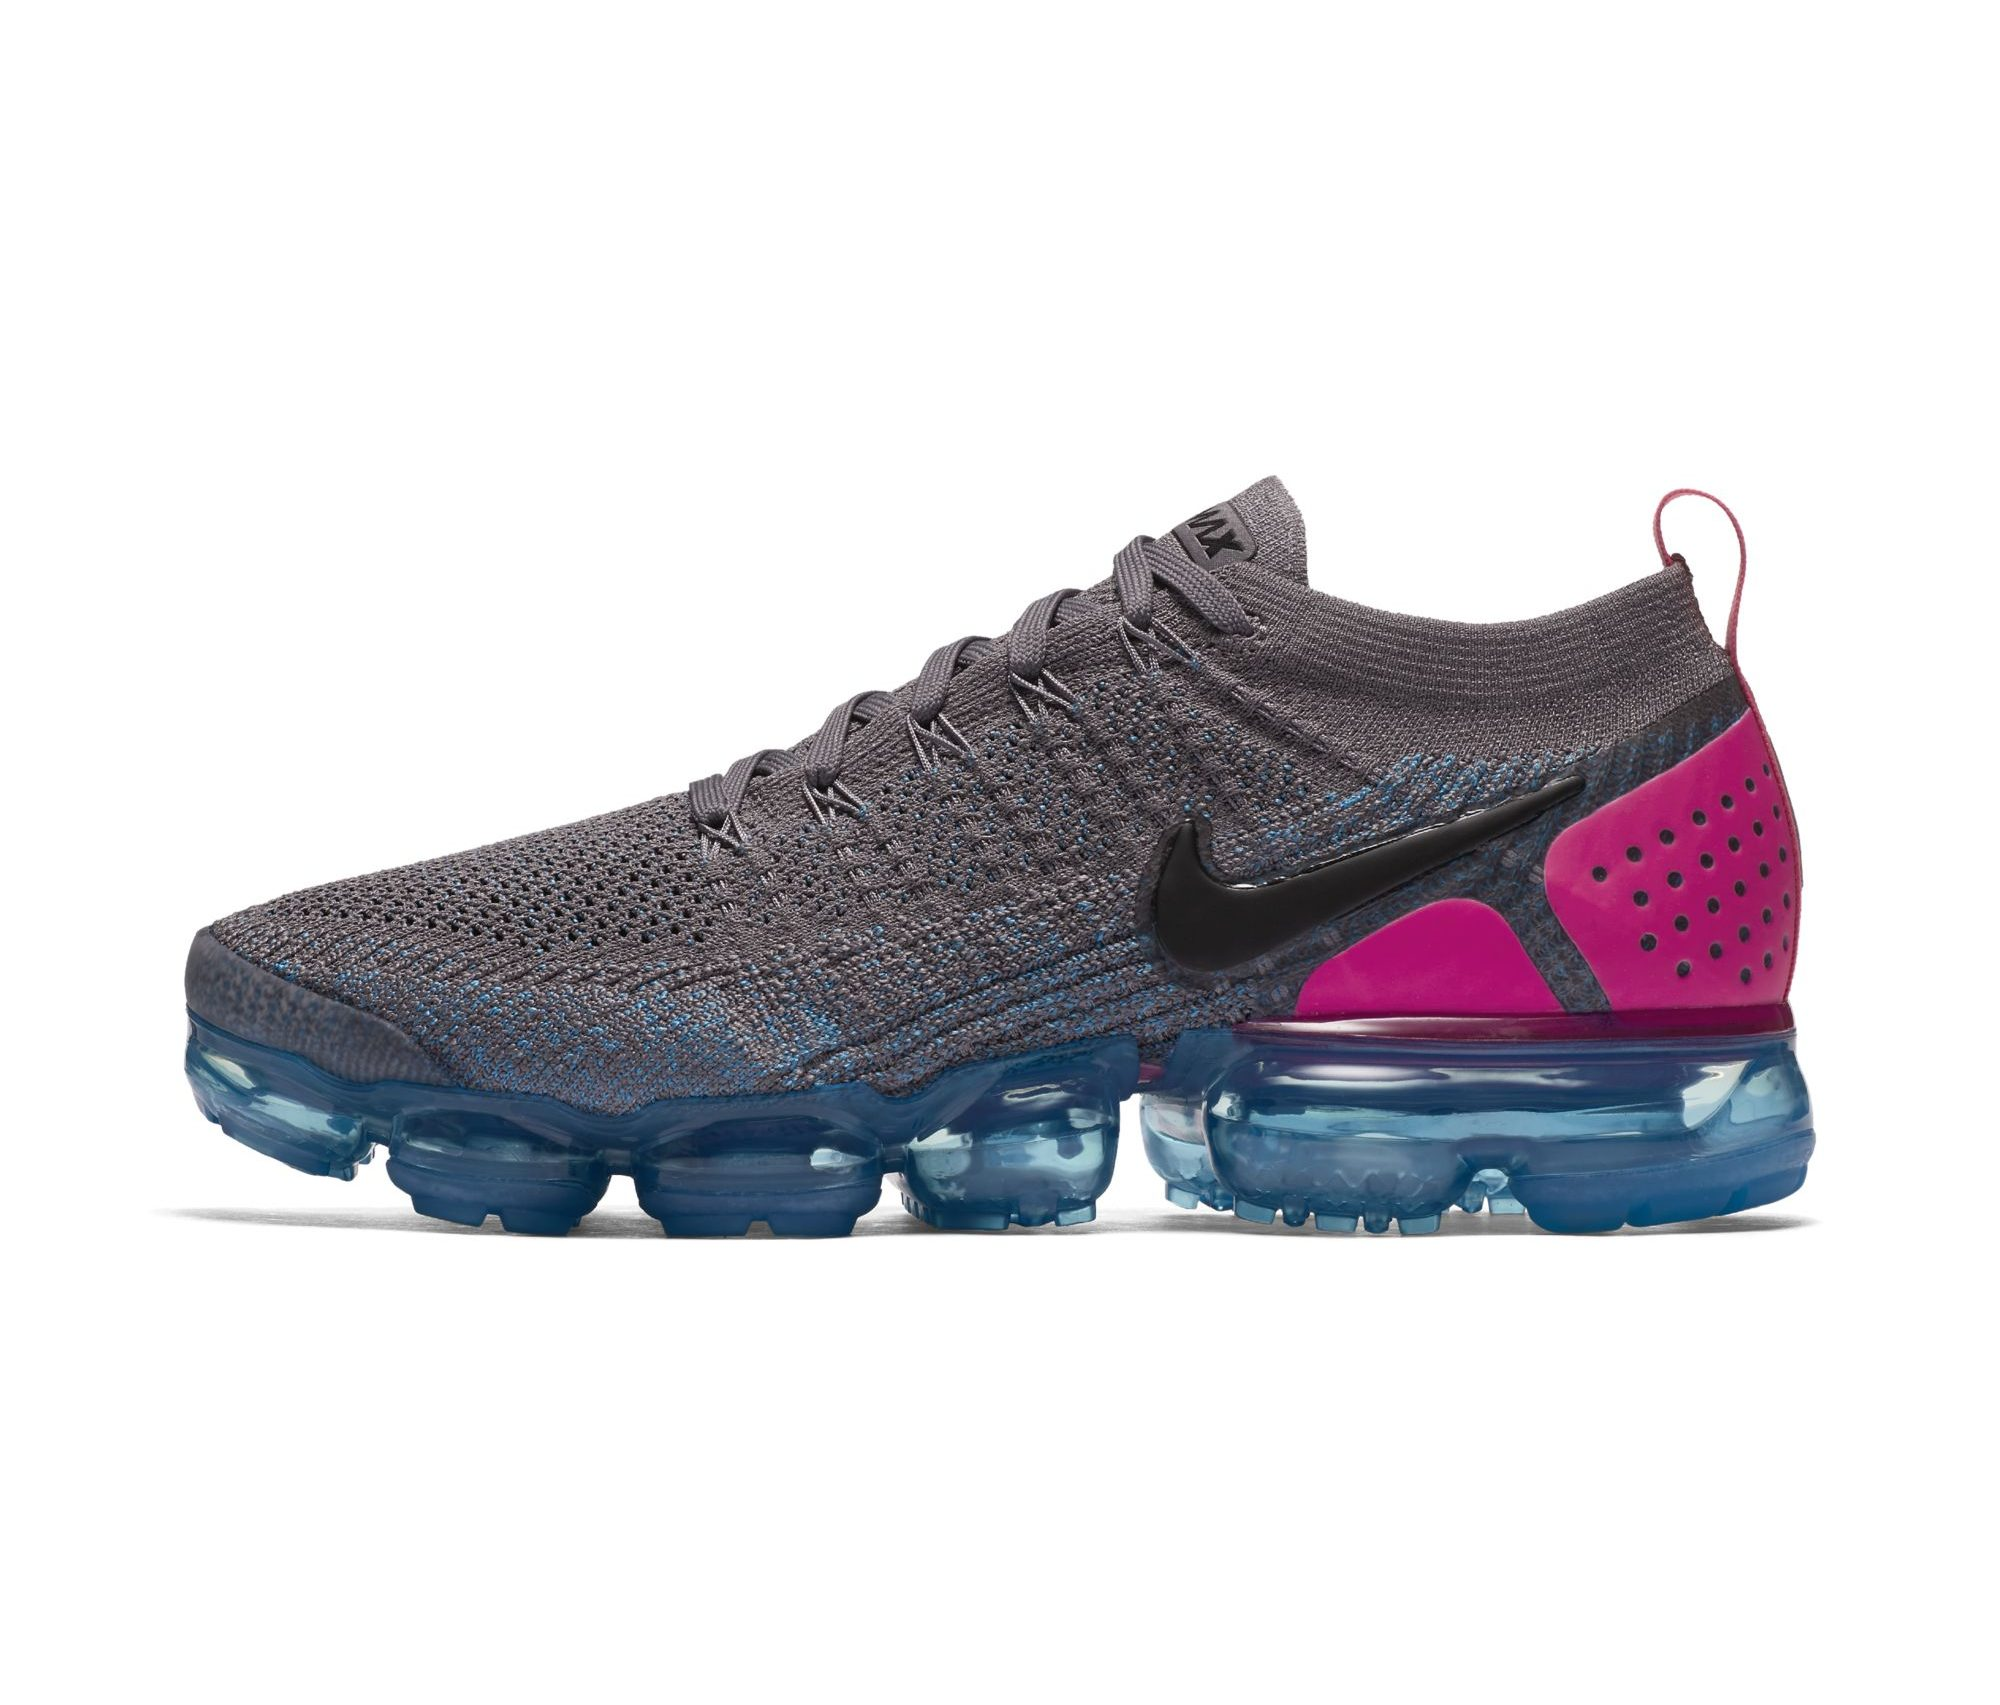 NIKE AIR VAPORMAX FLYKNIT 2 GUNSMOKE:BLACK-BLUE ORBIT-PINK BLAST-BLUE FURY-GLACIER BLUE 3